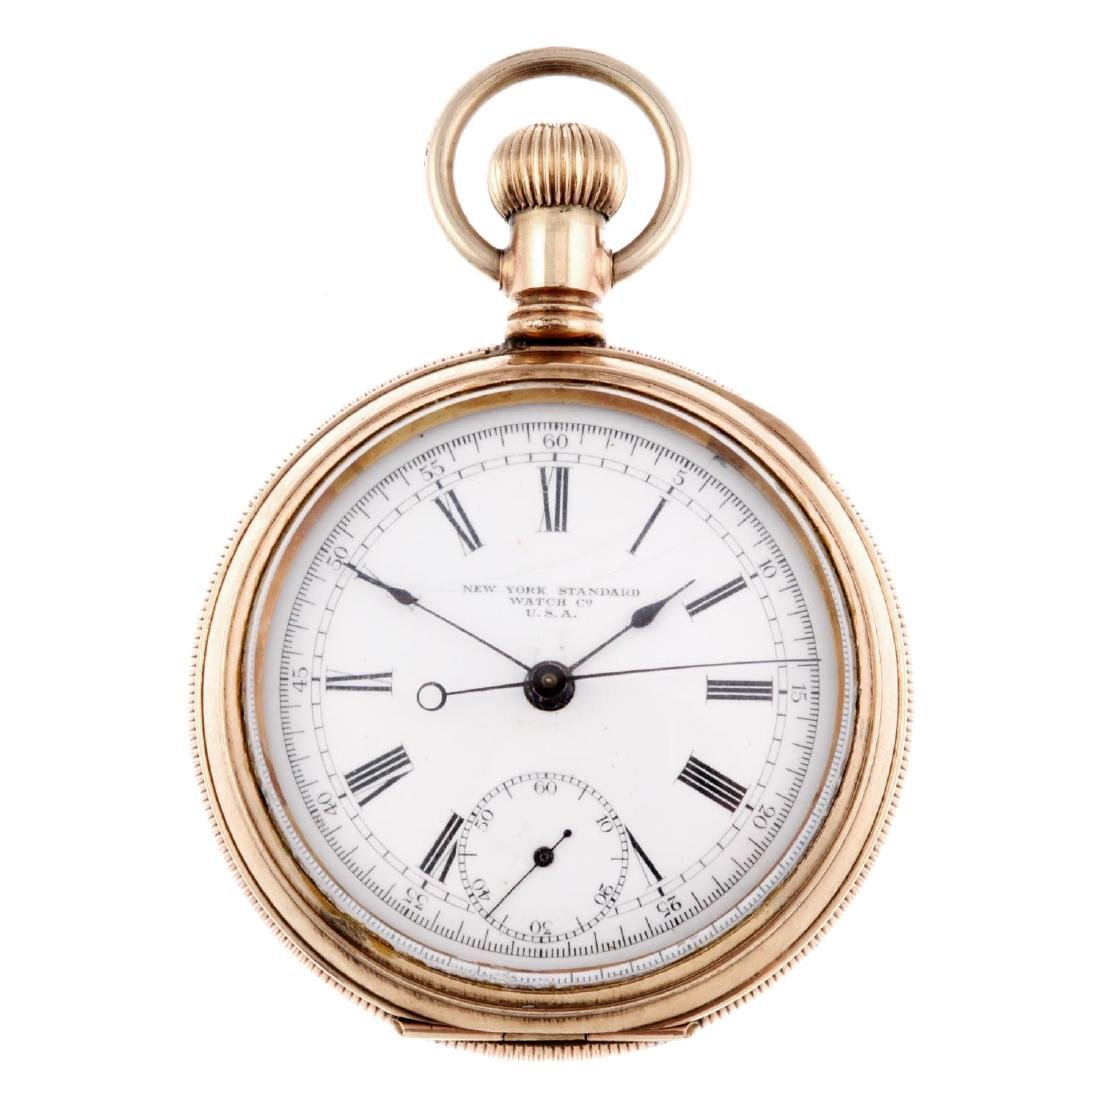 An open face chronograph pocket watch by New York